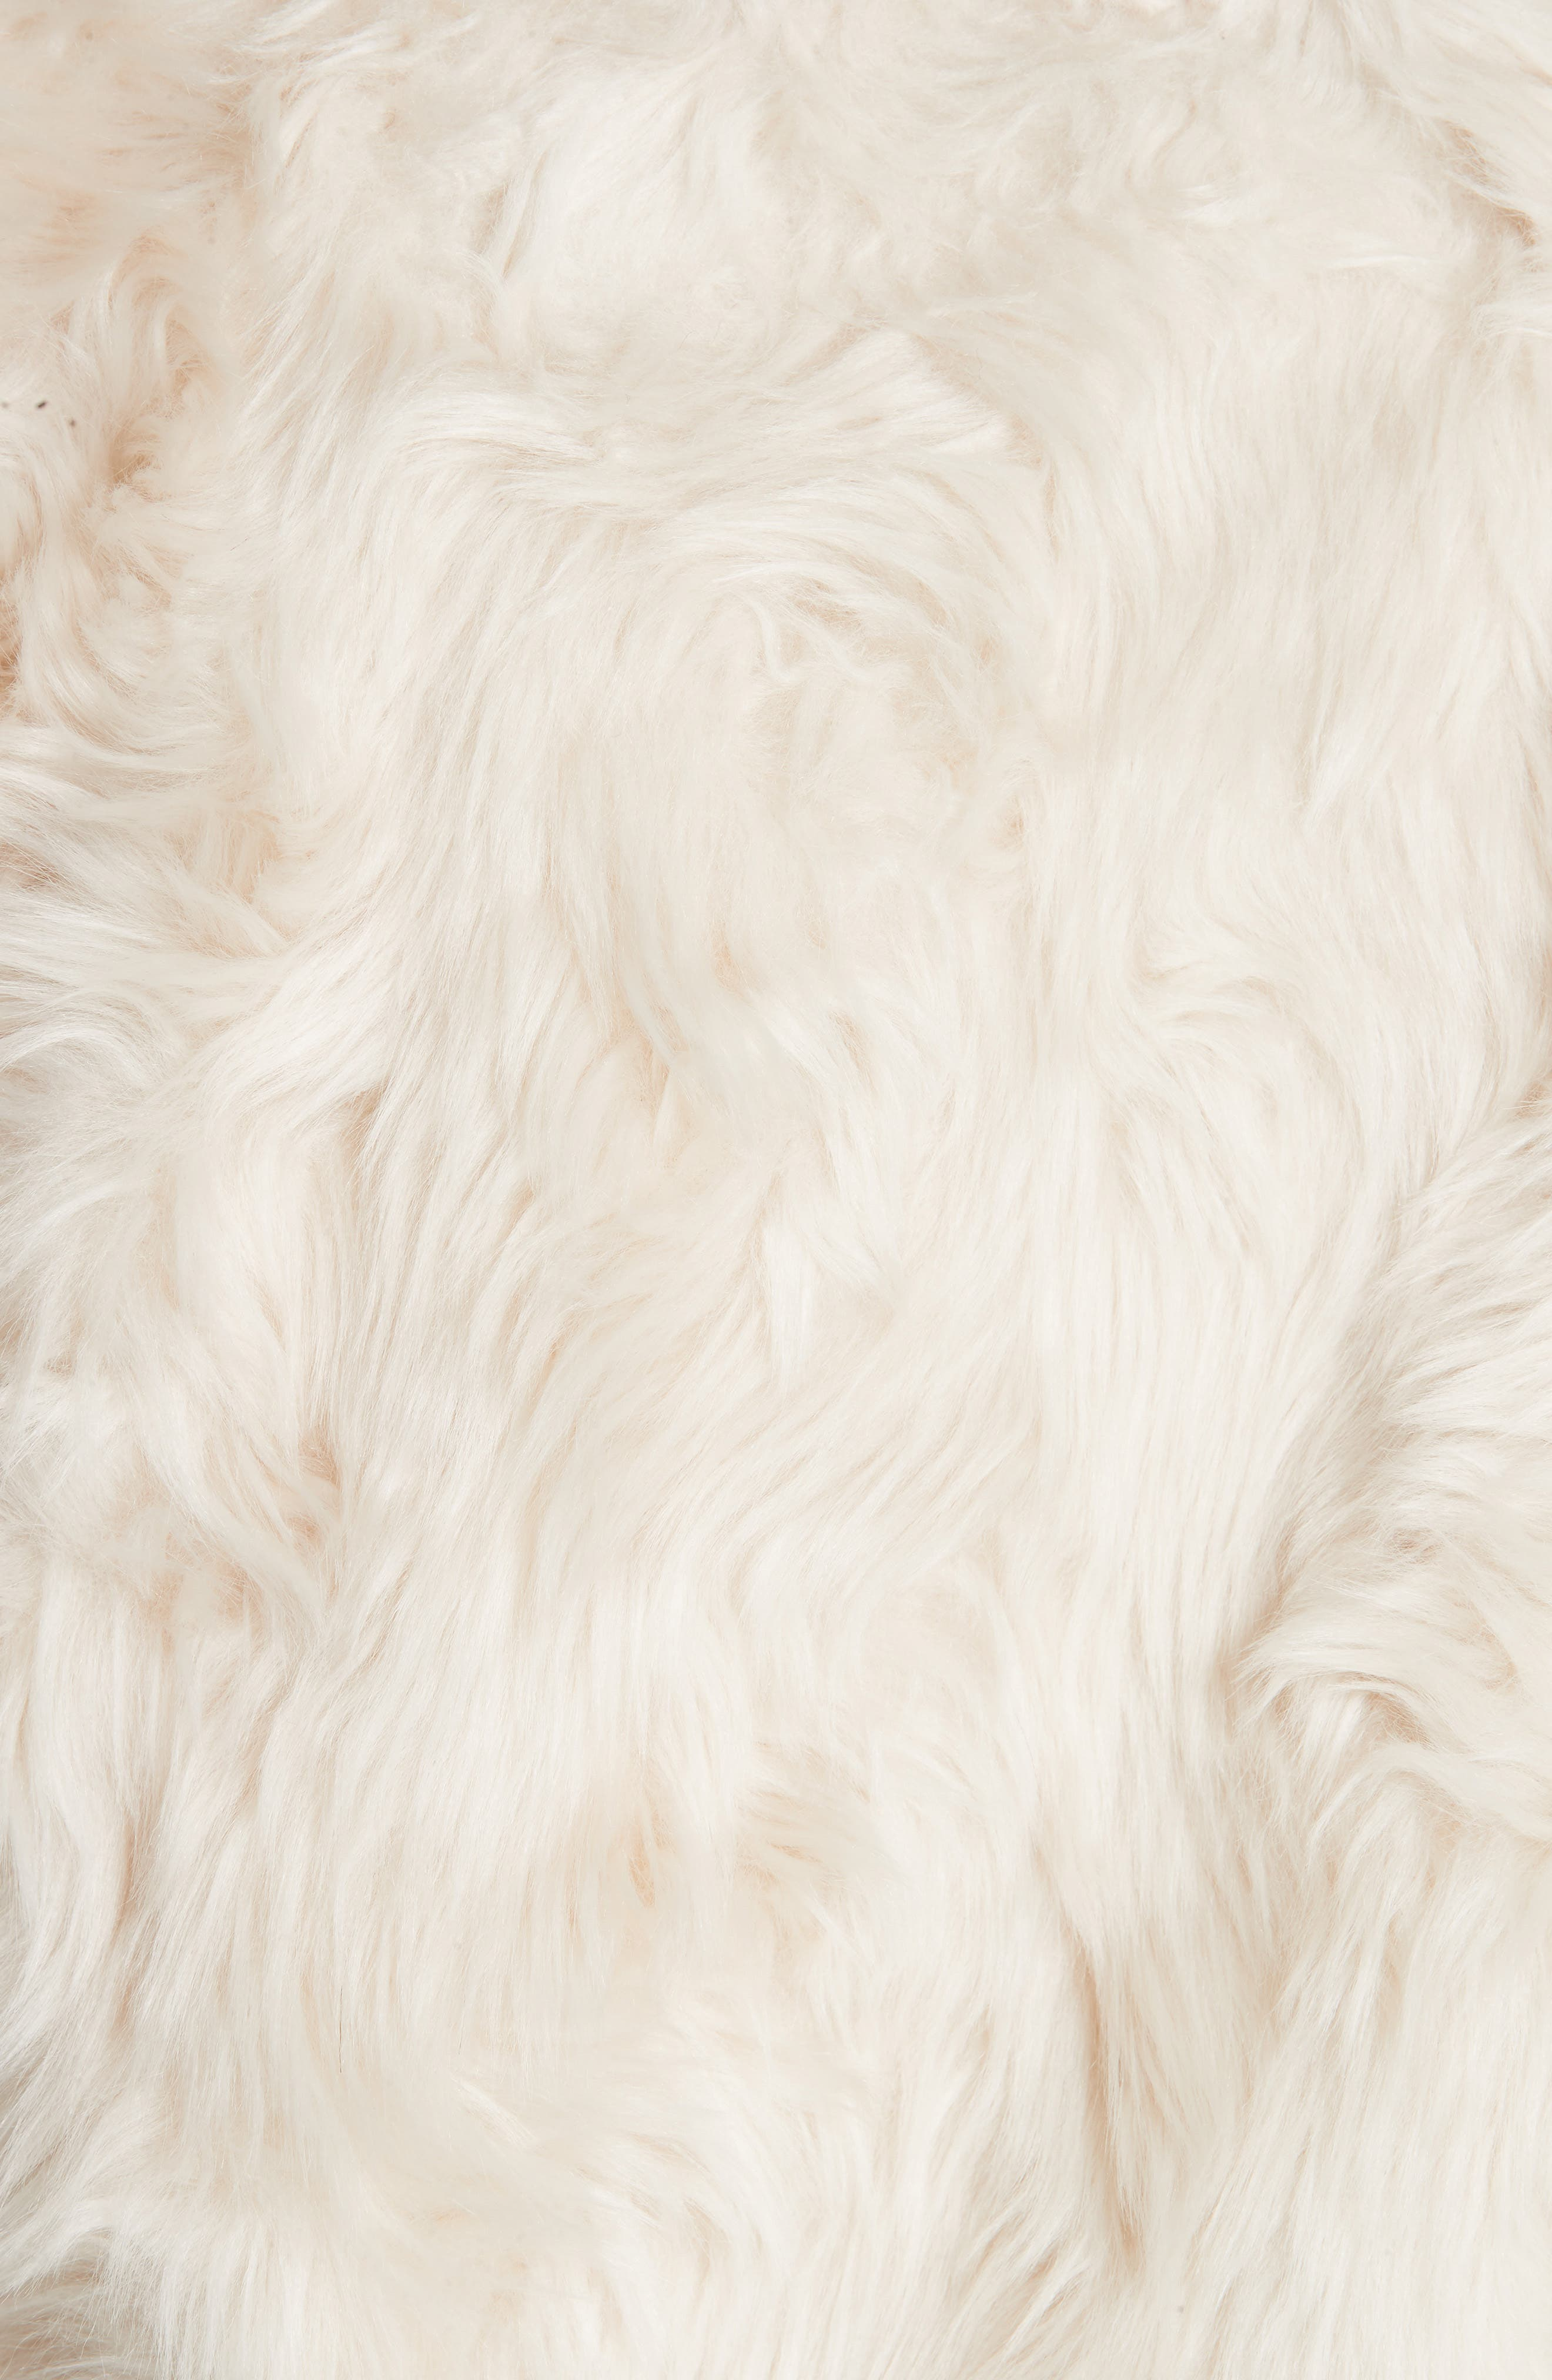 THEORY, Clairene Faux Fur Jacket, Alternate thumbnail 6, color, 907